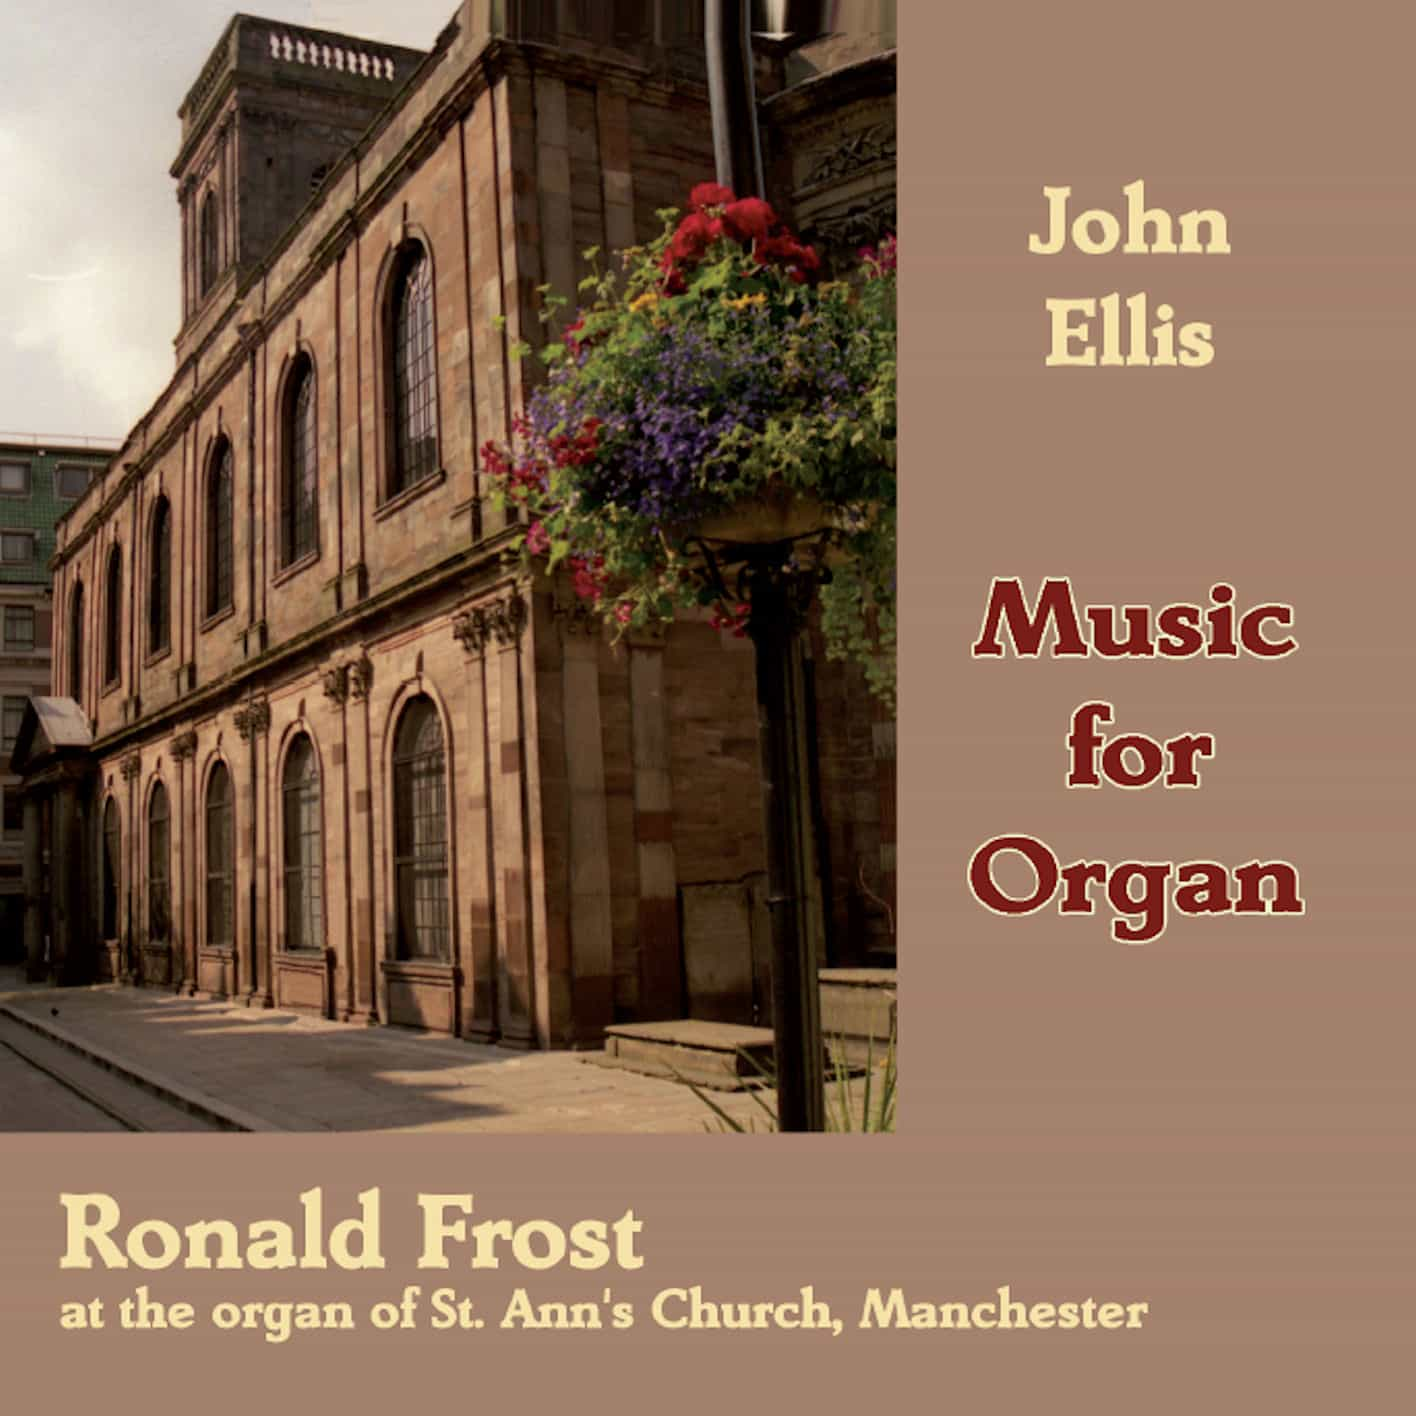 John Ellis: Music for Organ volume 1